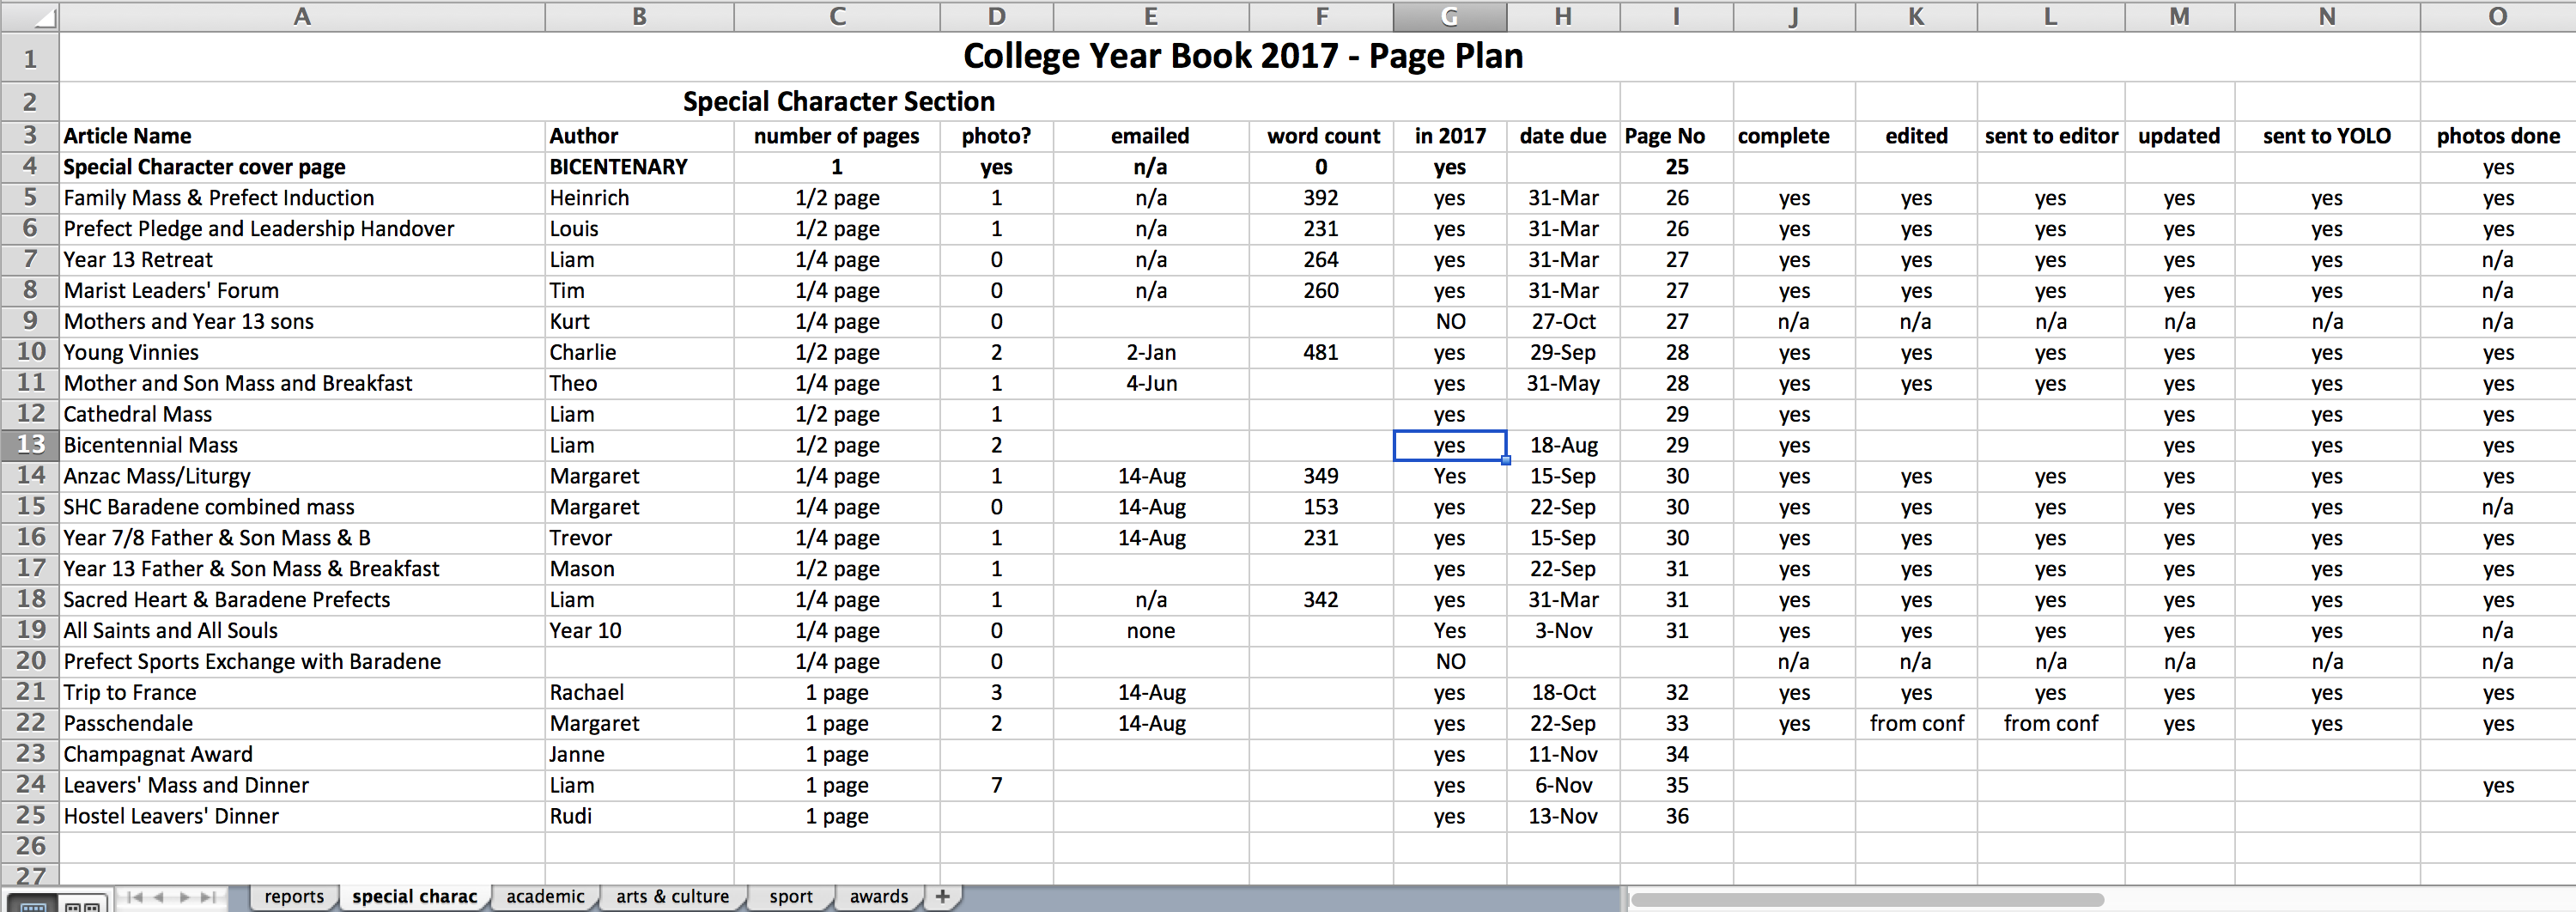 Page plan in Excel